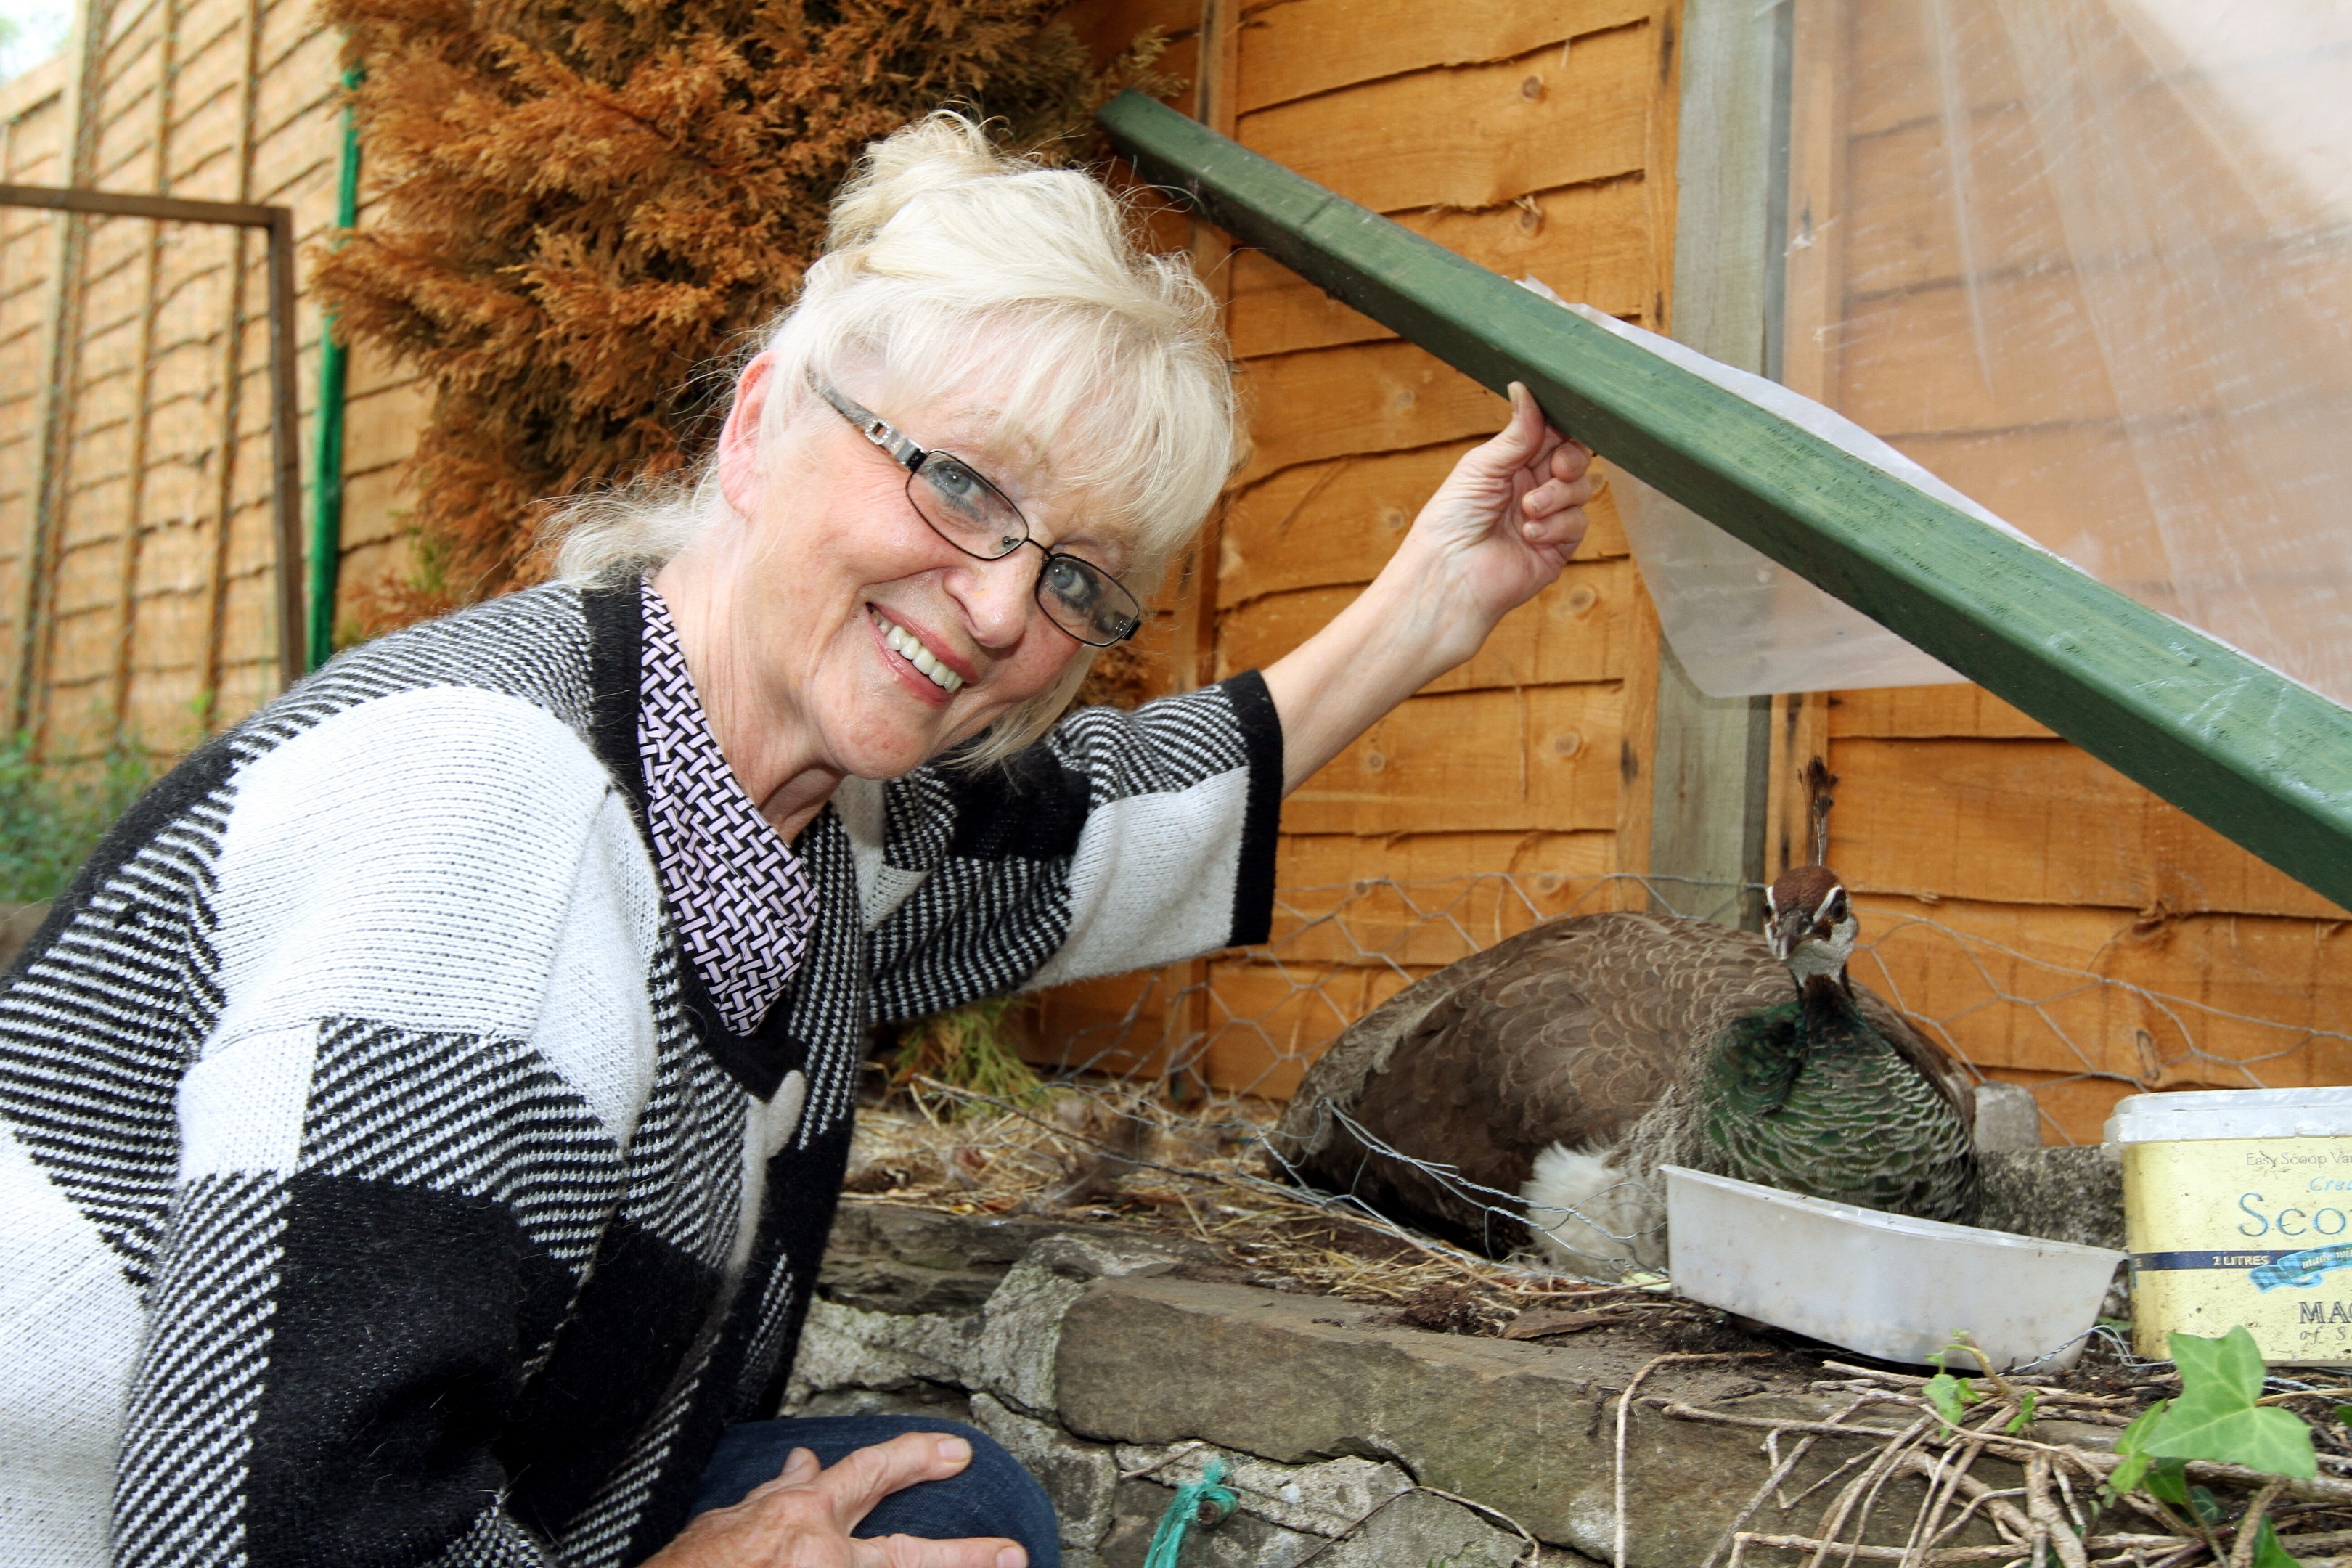 Kate, 71, with Priscilla the peahen, who is pining for Major.